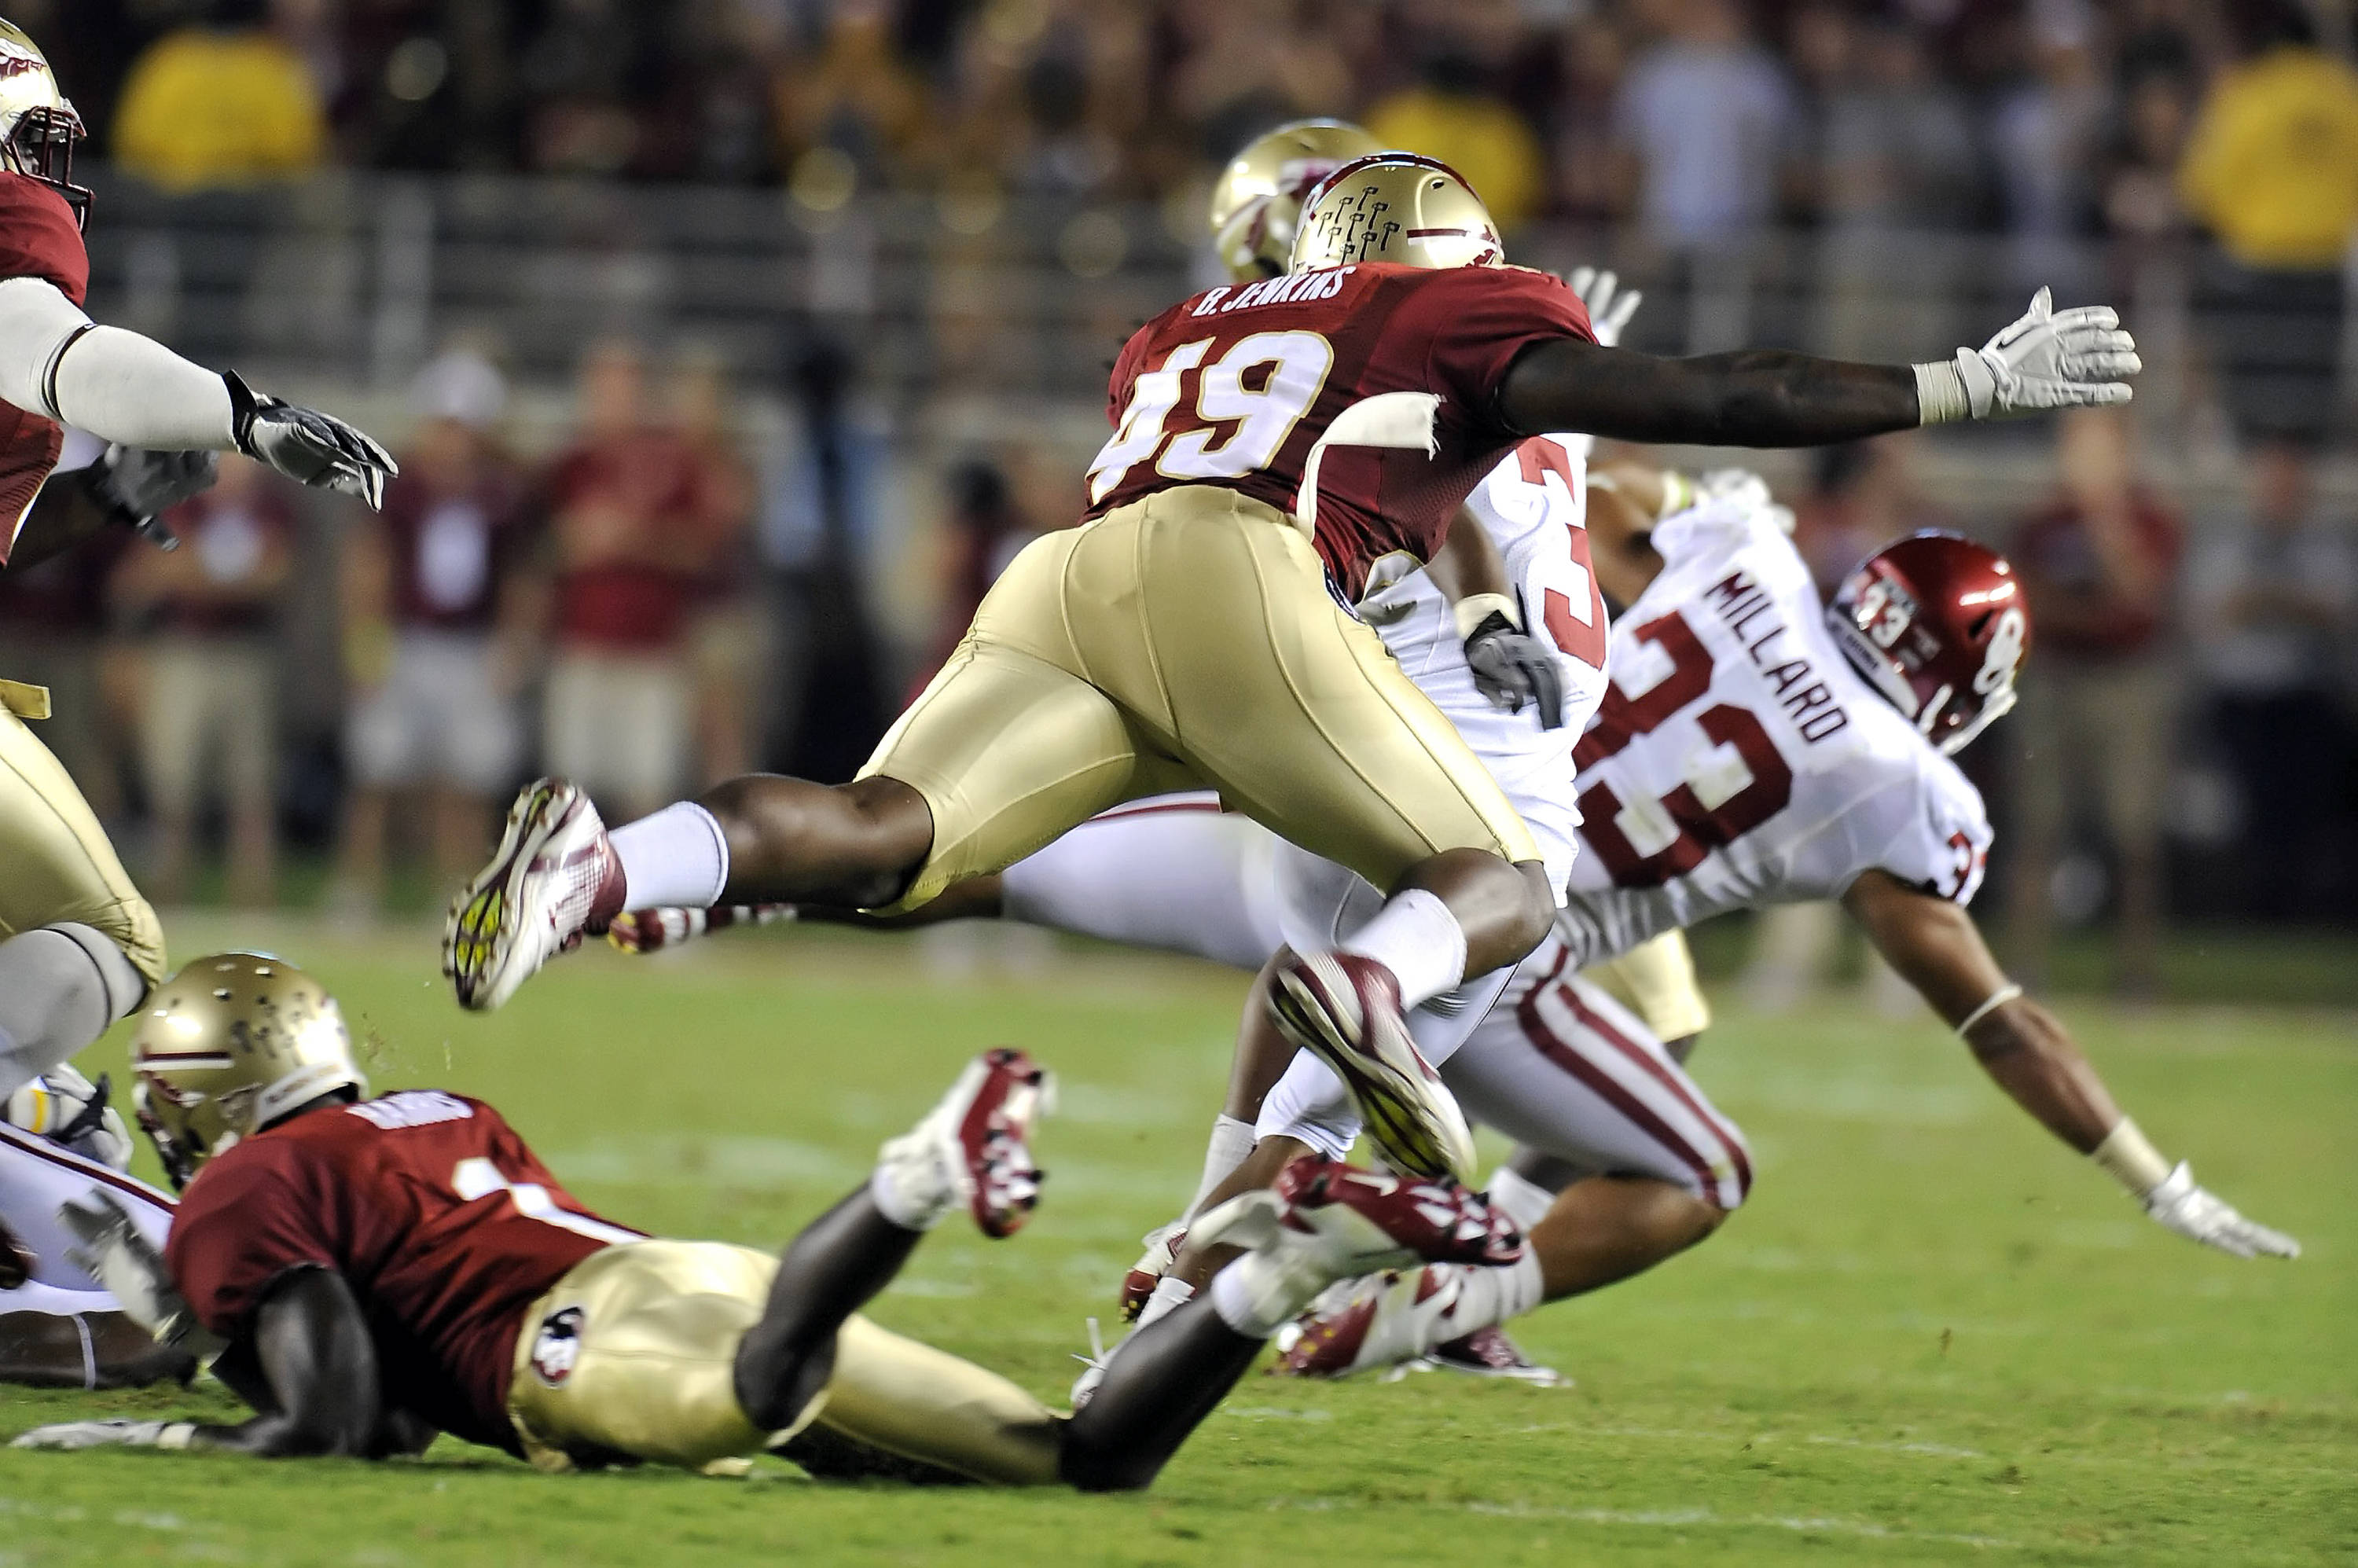 Brandon Jenkins (49) leaps to make a tackle in Florida State's matchup with No. 1 Oklahoma